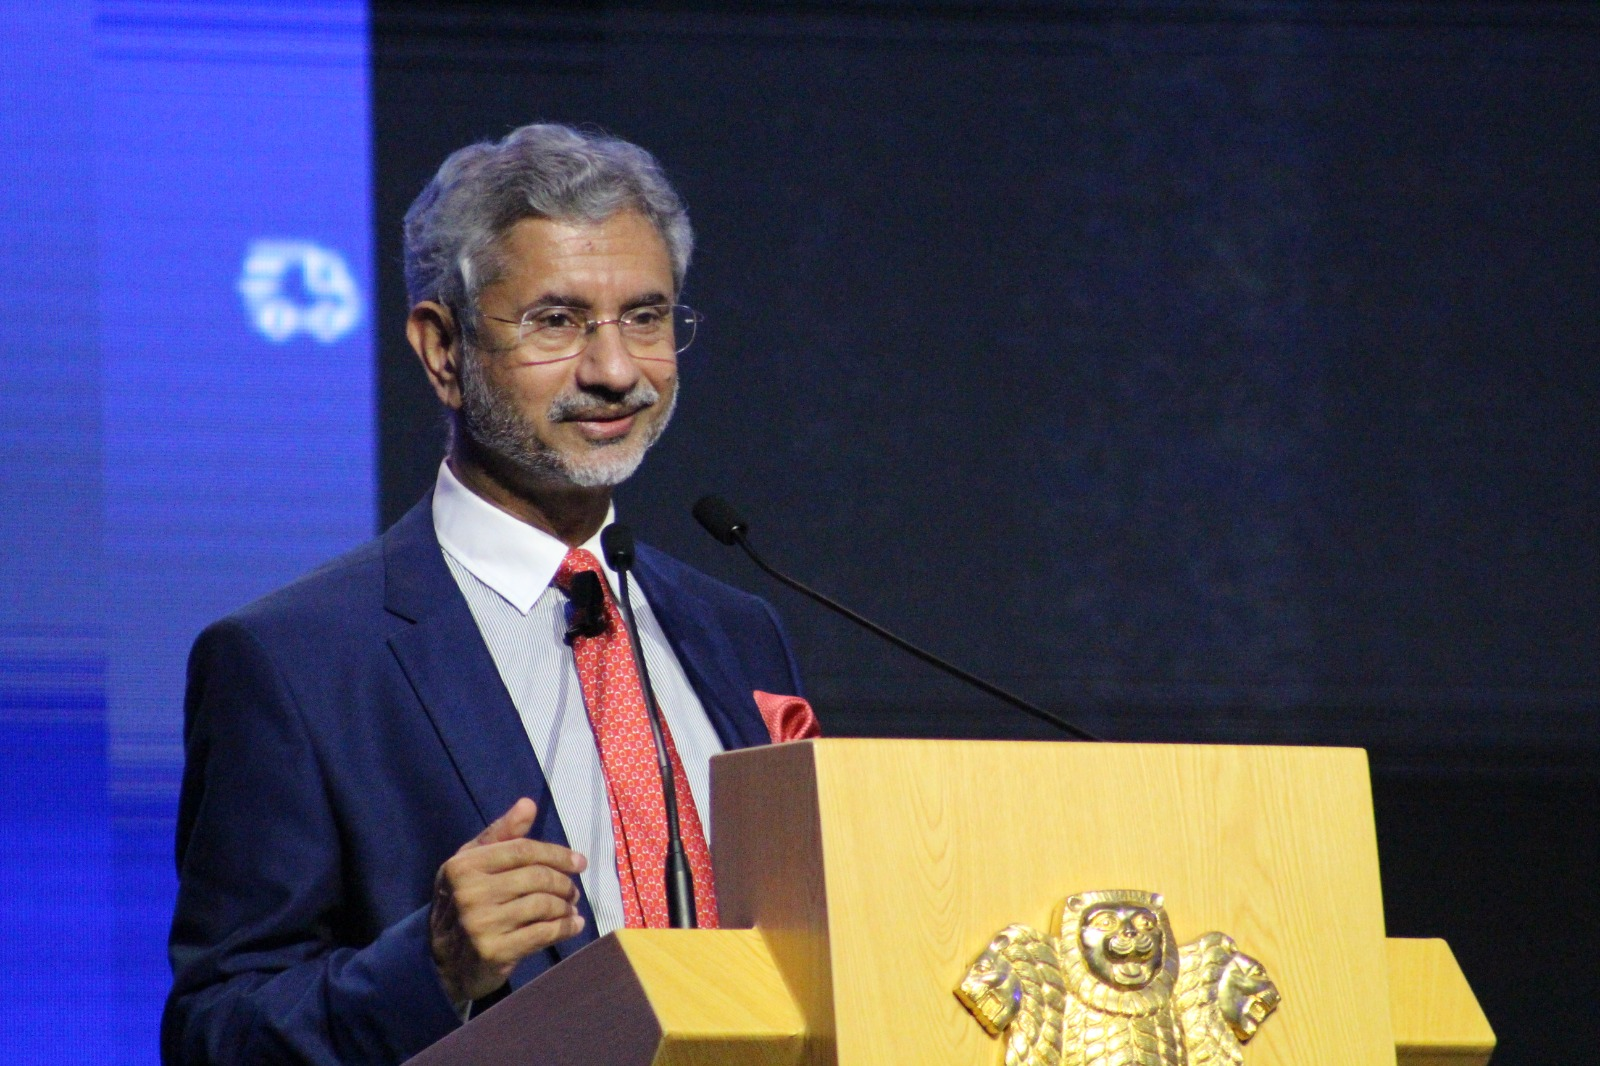 Jaishankar also spoke about the importance of the Indian diaspora to the nation's foreign policy and diplomacy. Photo: Connected to India